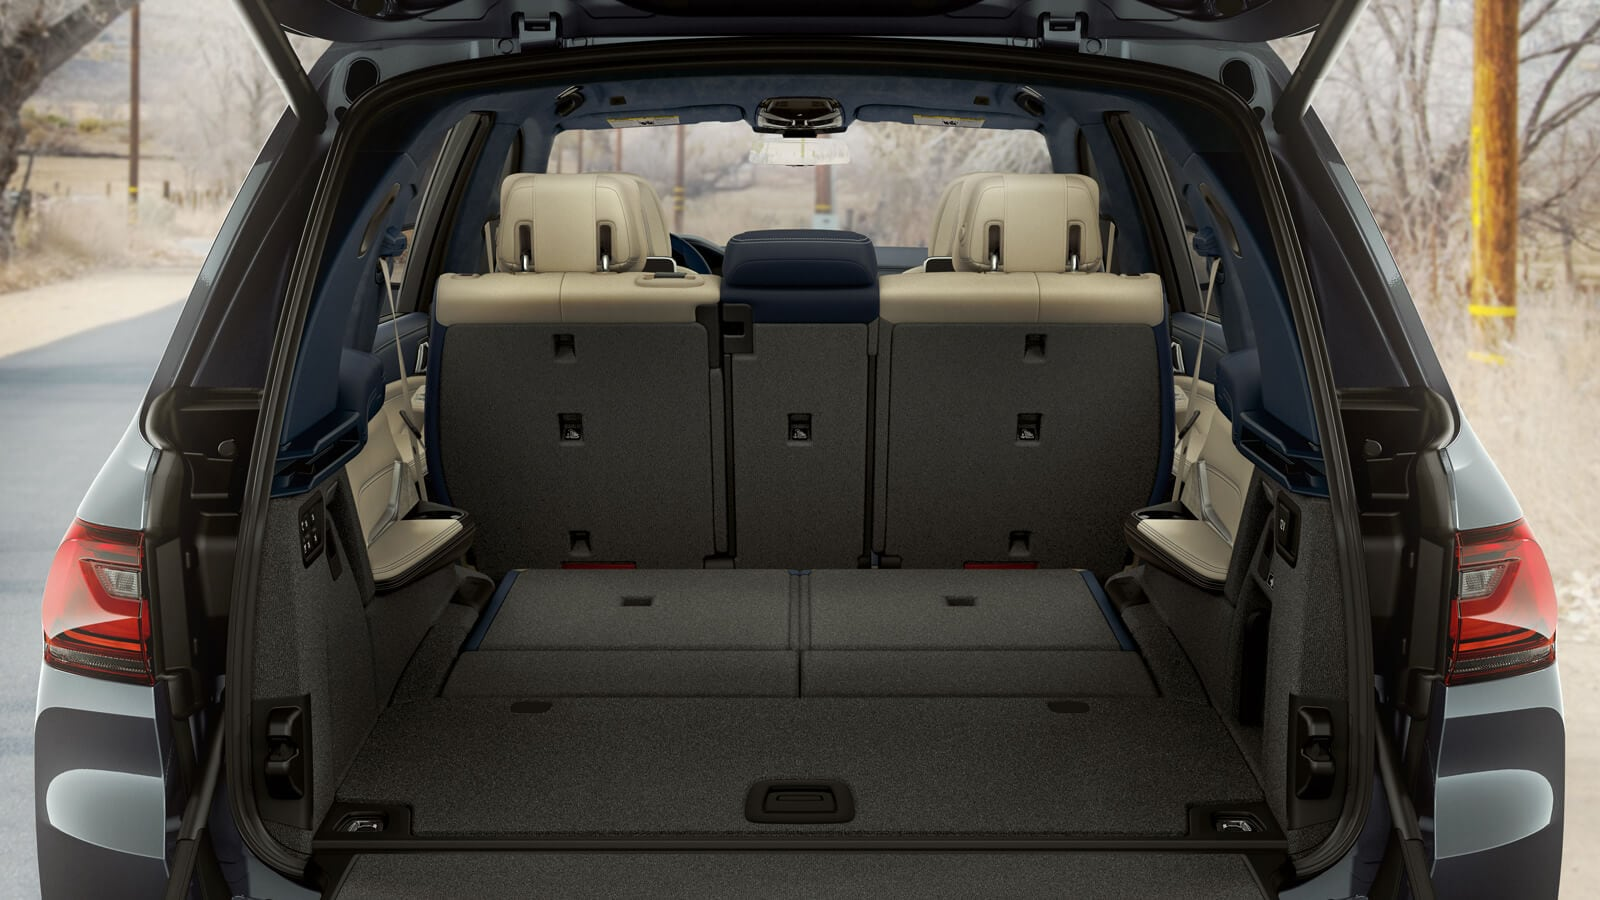 2020 BMW X7 Interior Cargo Space